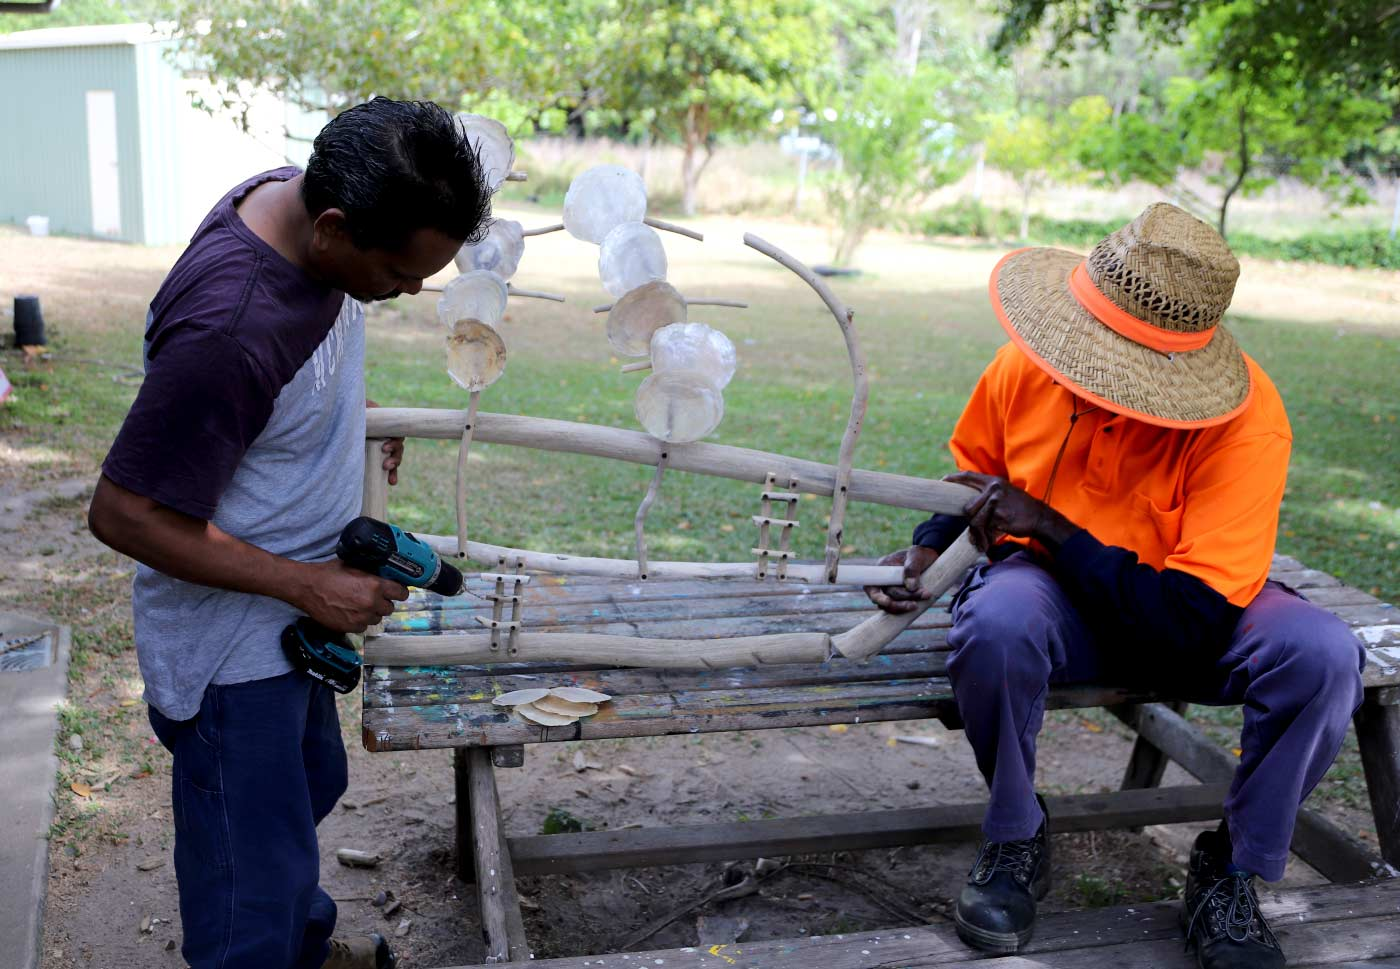 Two men work on a large sculpture made from driftwood, shellfish and other materials. - click to view larger image